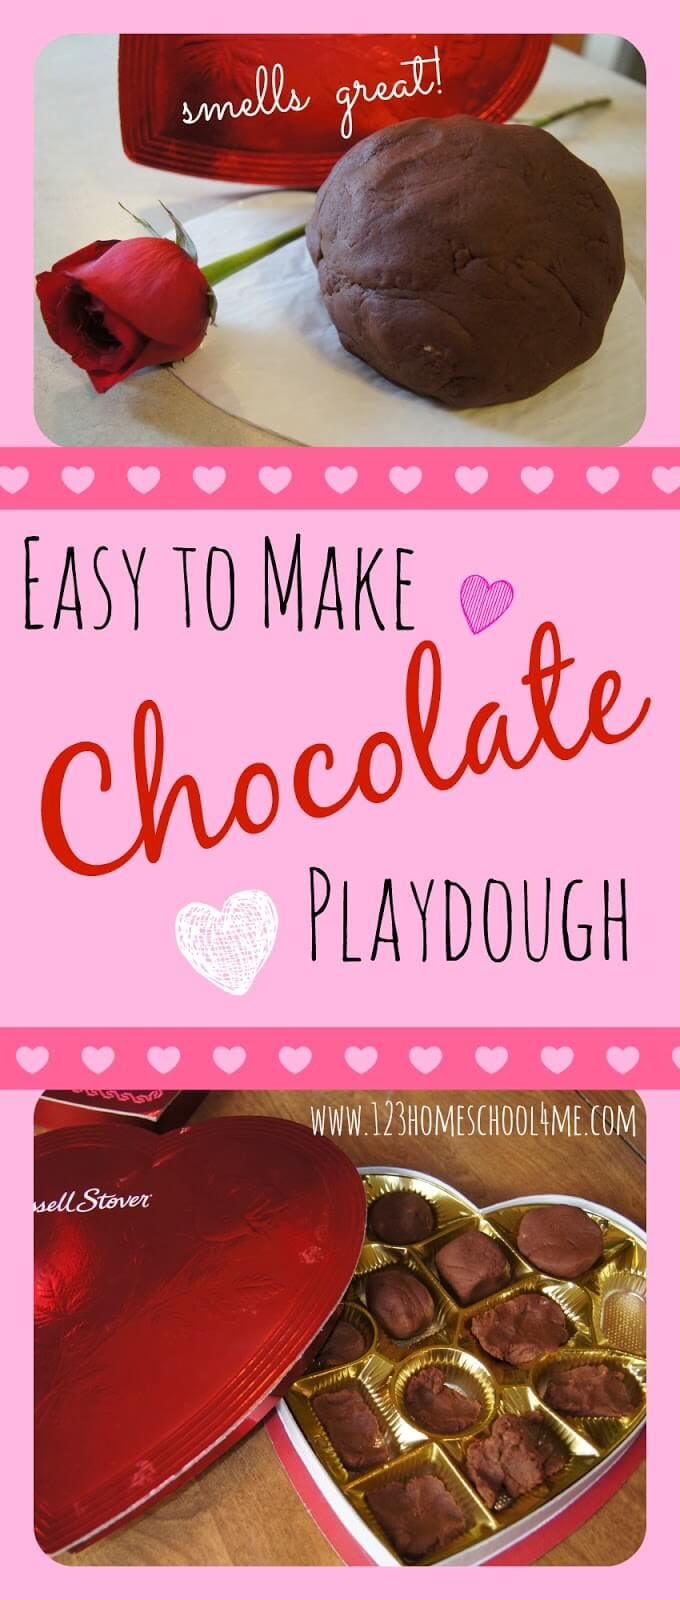 This Chocolate Playdough is a really funplaydough recipe to include in your Valentine's Day celebration. Use this chocolate playdough recipe as a hands-onValentines Day kids activities. It is easy to make and smells chocolaty good! It is especially fun to play with an empty heart chocolate box for toddler, preschool, kindergarten, and grade 1 students. Children will love the chocolate scented playdoughthat they can form into candies for a pretend play based on Valetnine's Day!